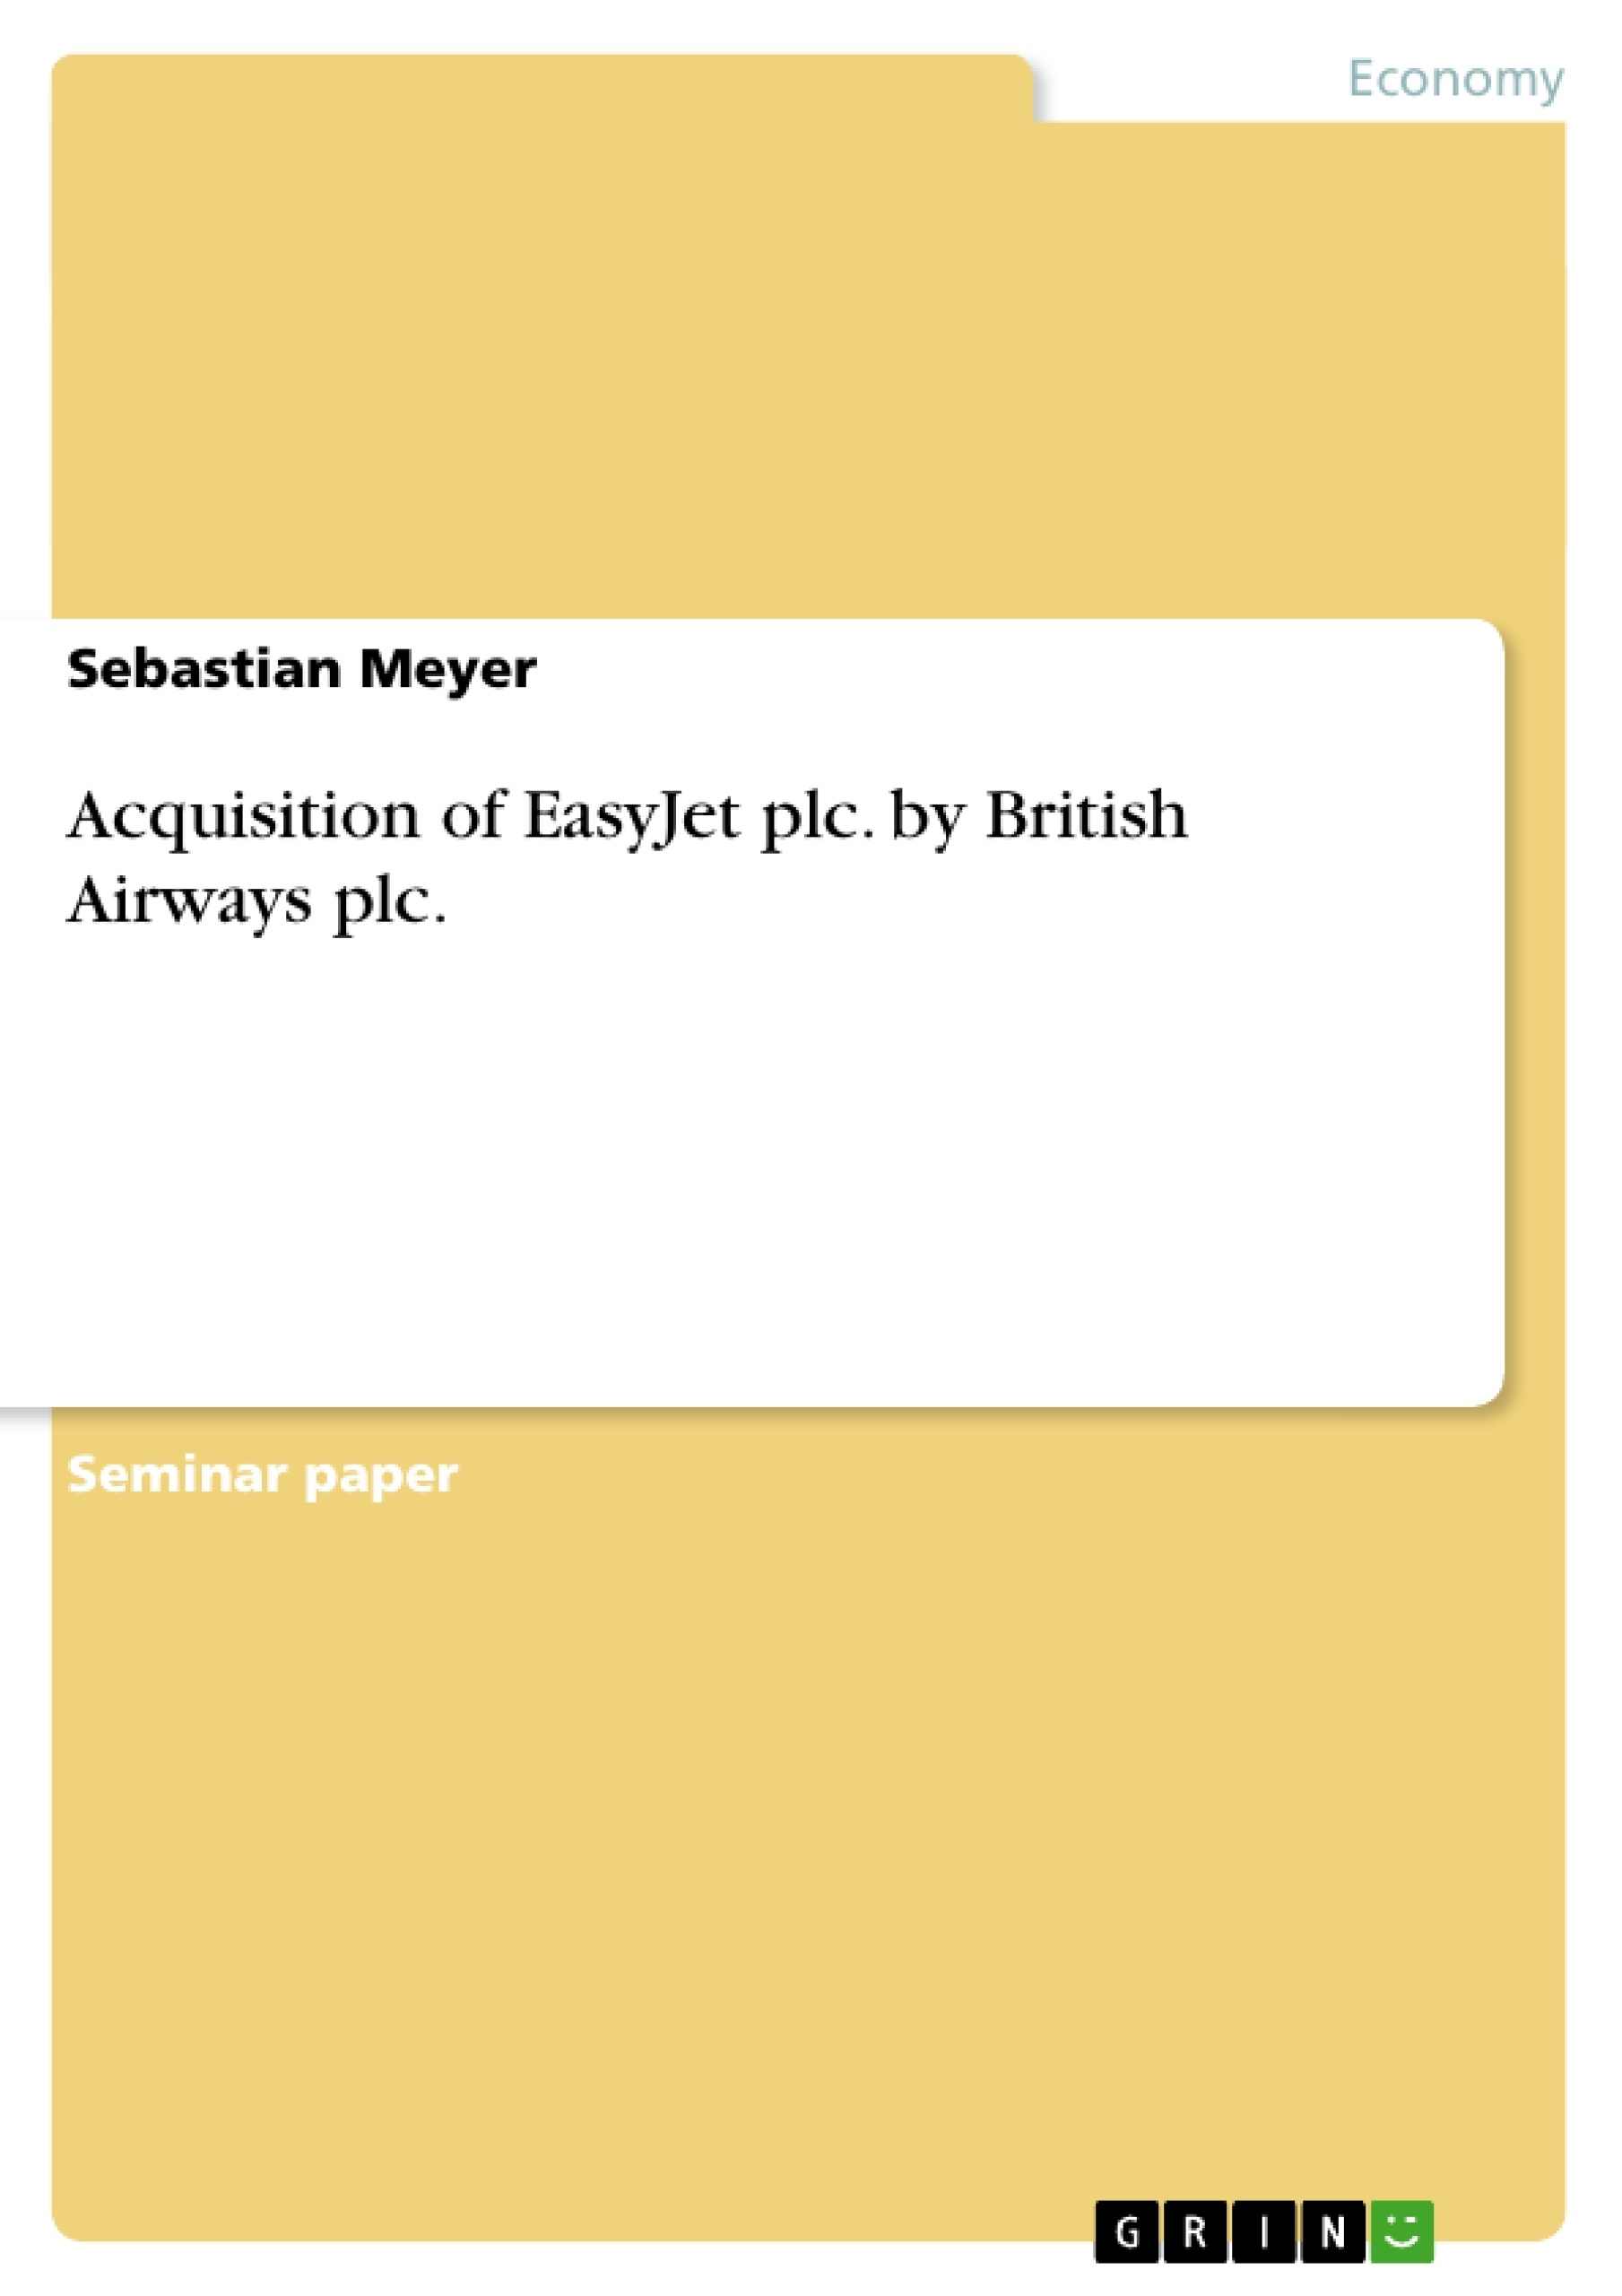 essay on maturity acquisition of easyjet plc by british airways  acquisition of easyjet plc by british airways plc publish your acquisition of easyjet plc by british